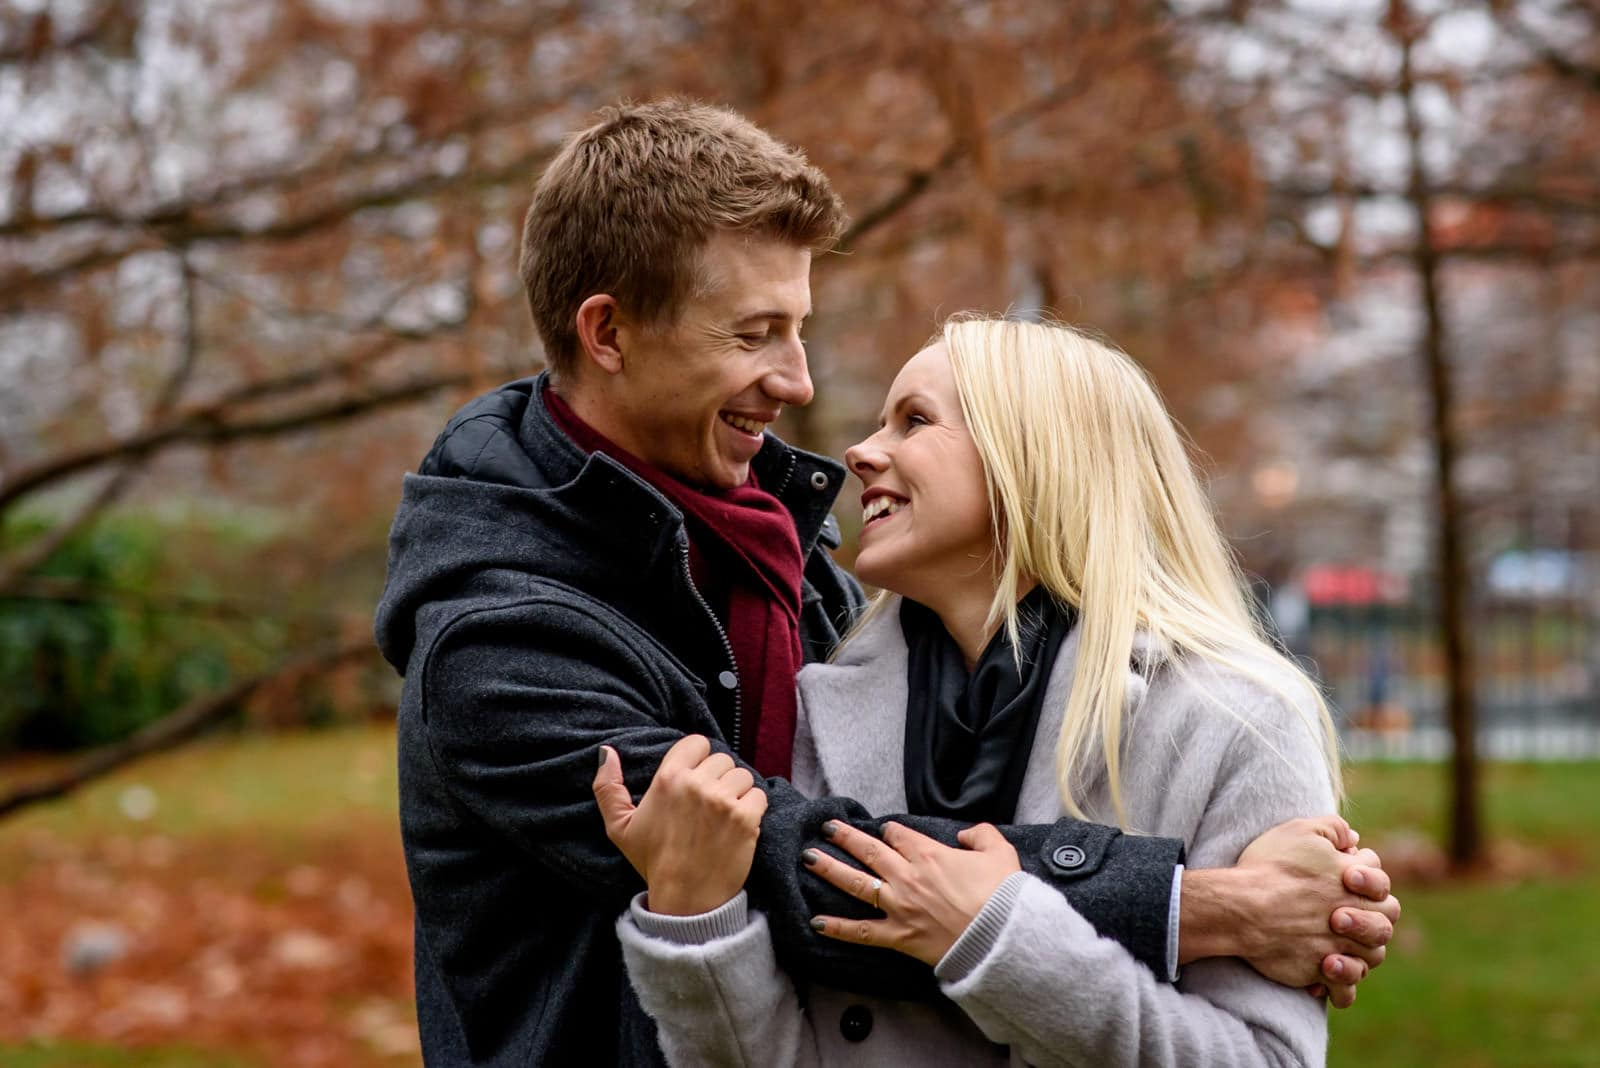 Engaged couple in London park with brown Autumn leaves.